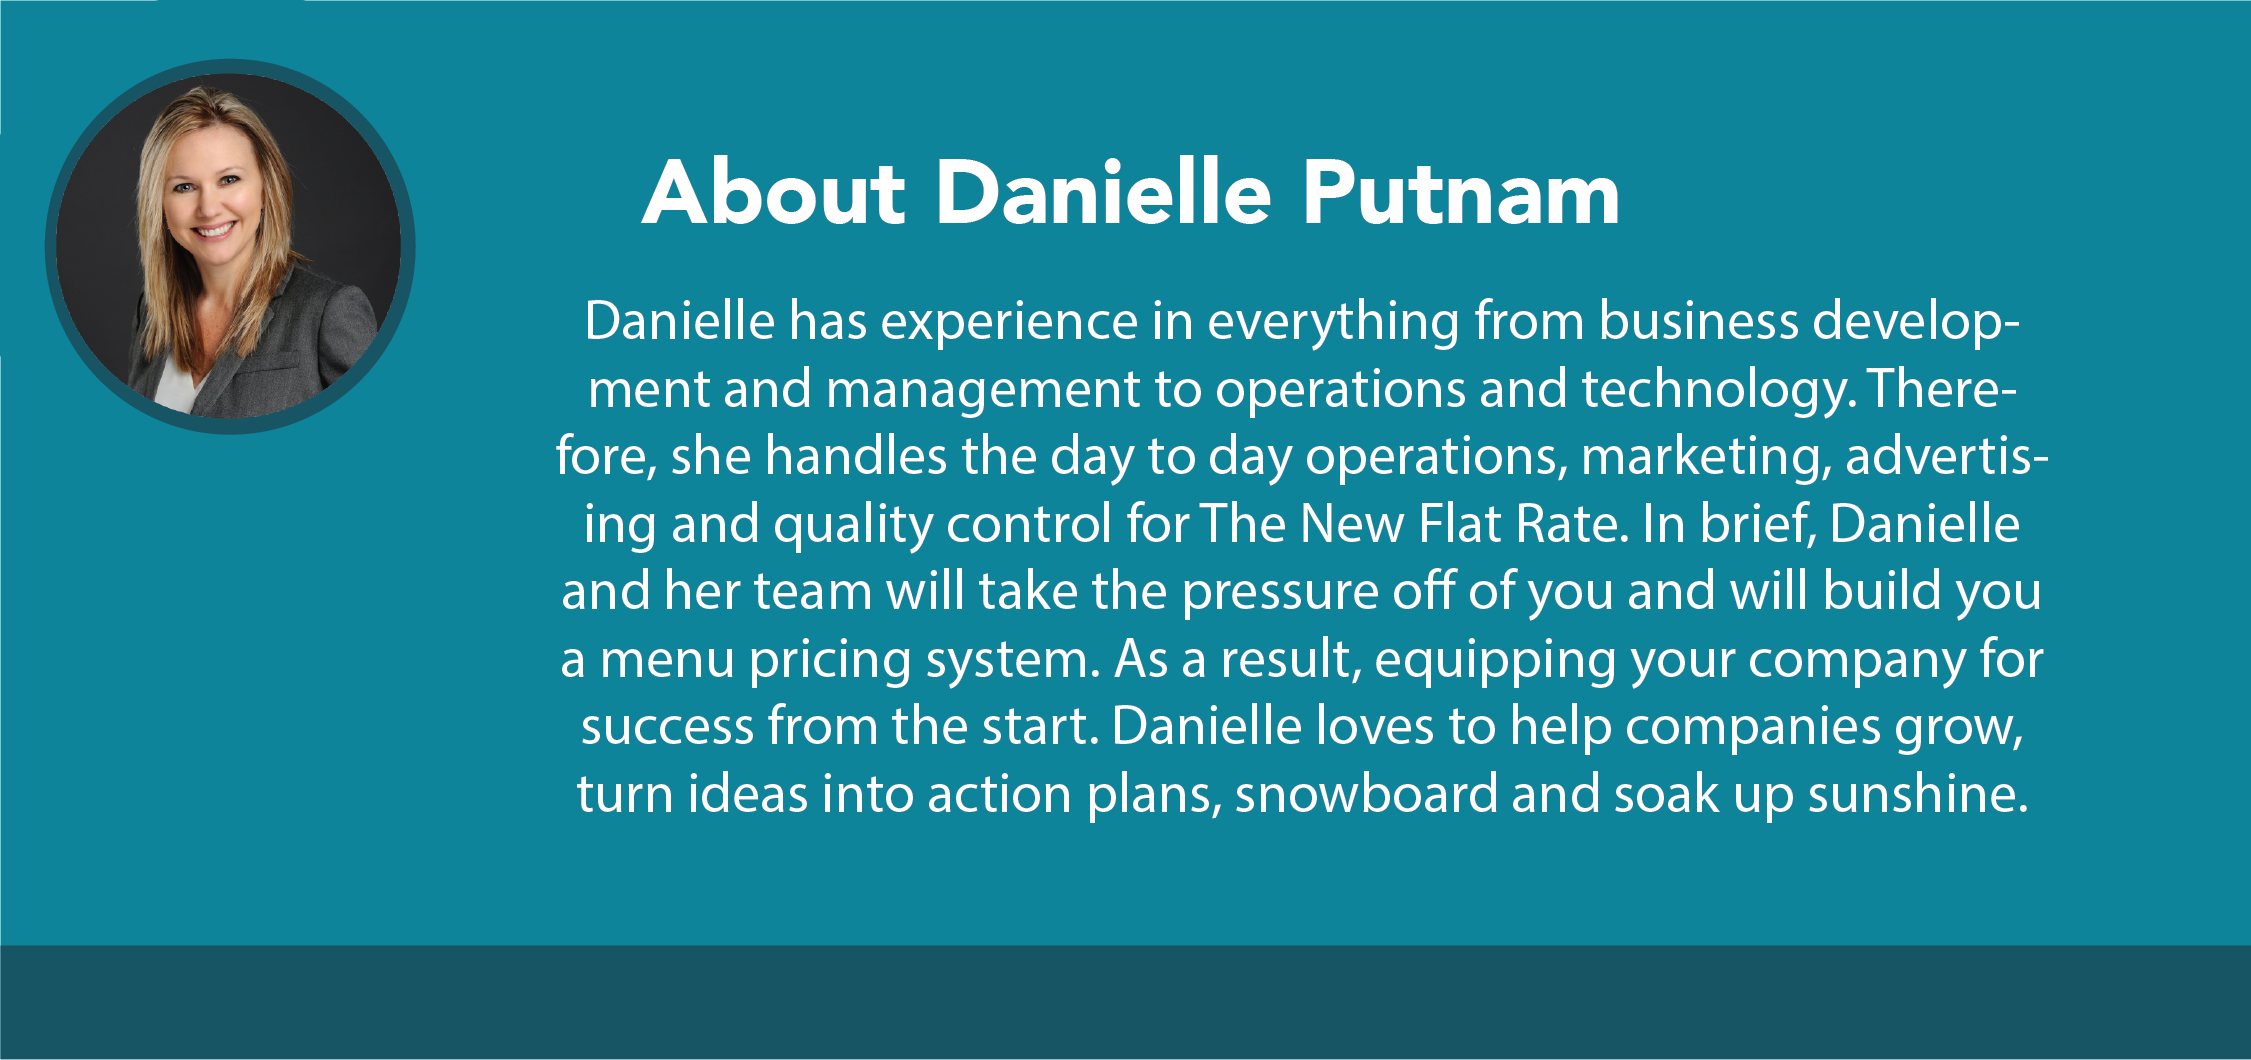 Danielle Putnam is the CEO of The New Flat Rate